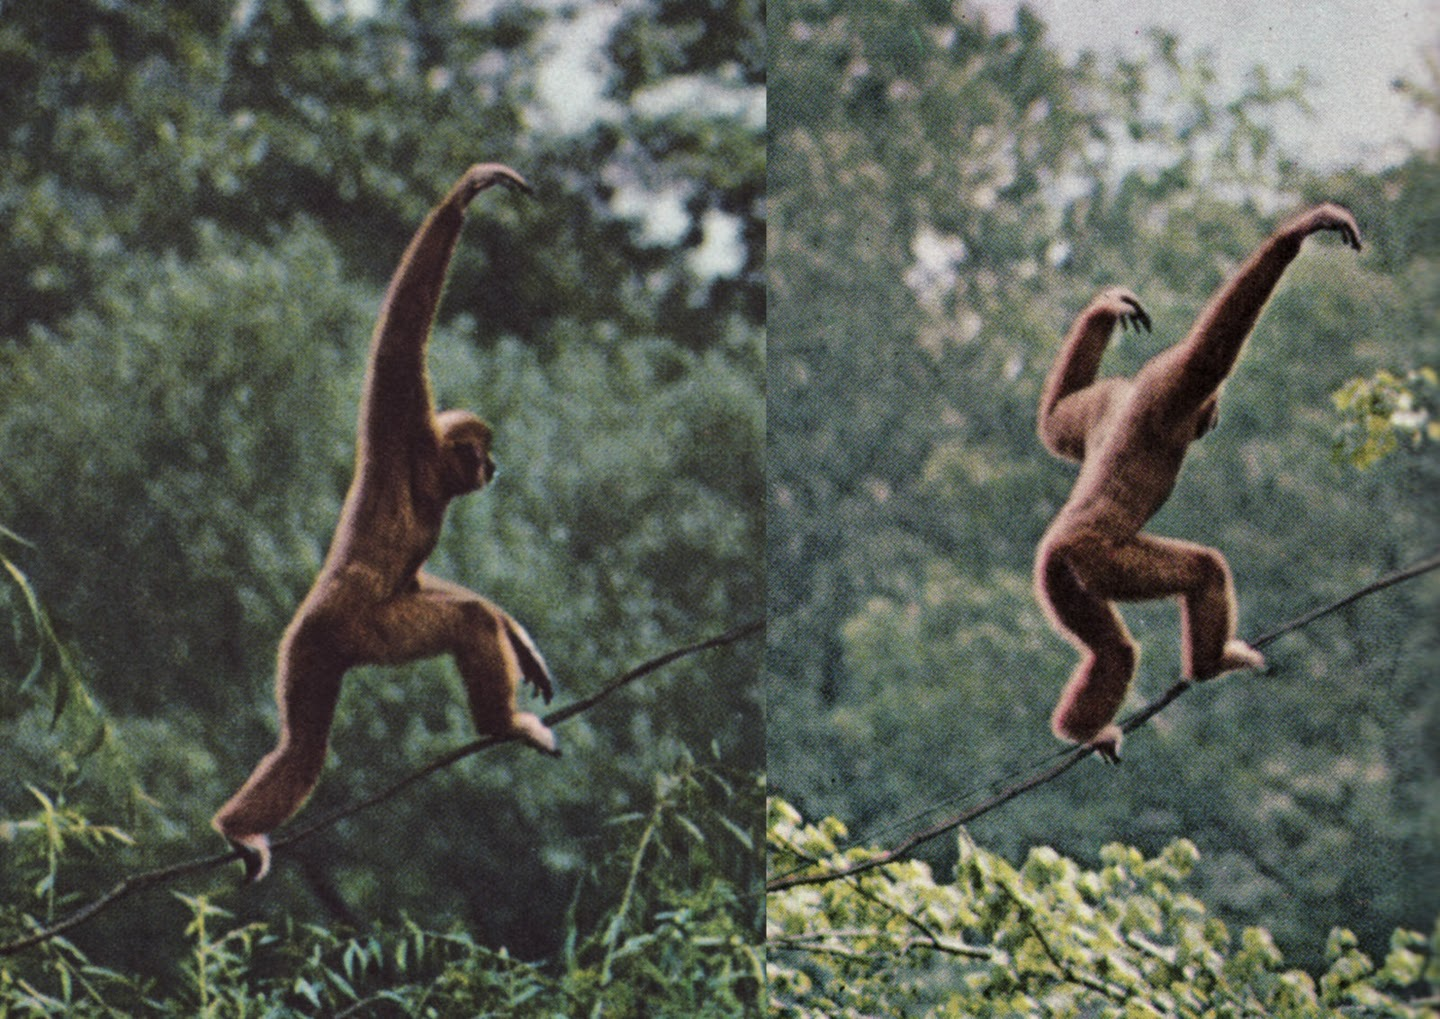 Hylobatid bipedalism (photo by Nina Leen) is explained in the framework of Aaron Filler's book, The Upright Ape.